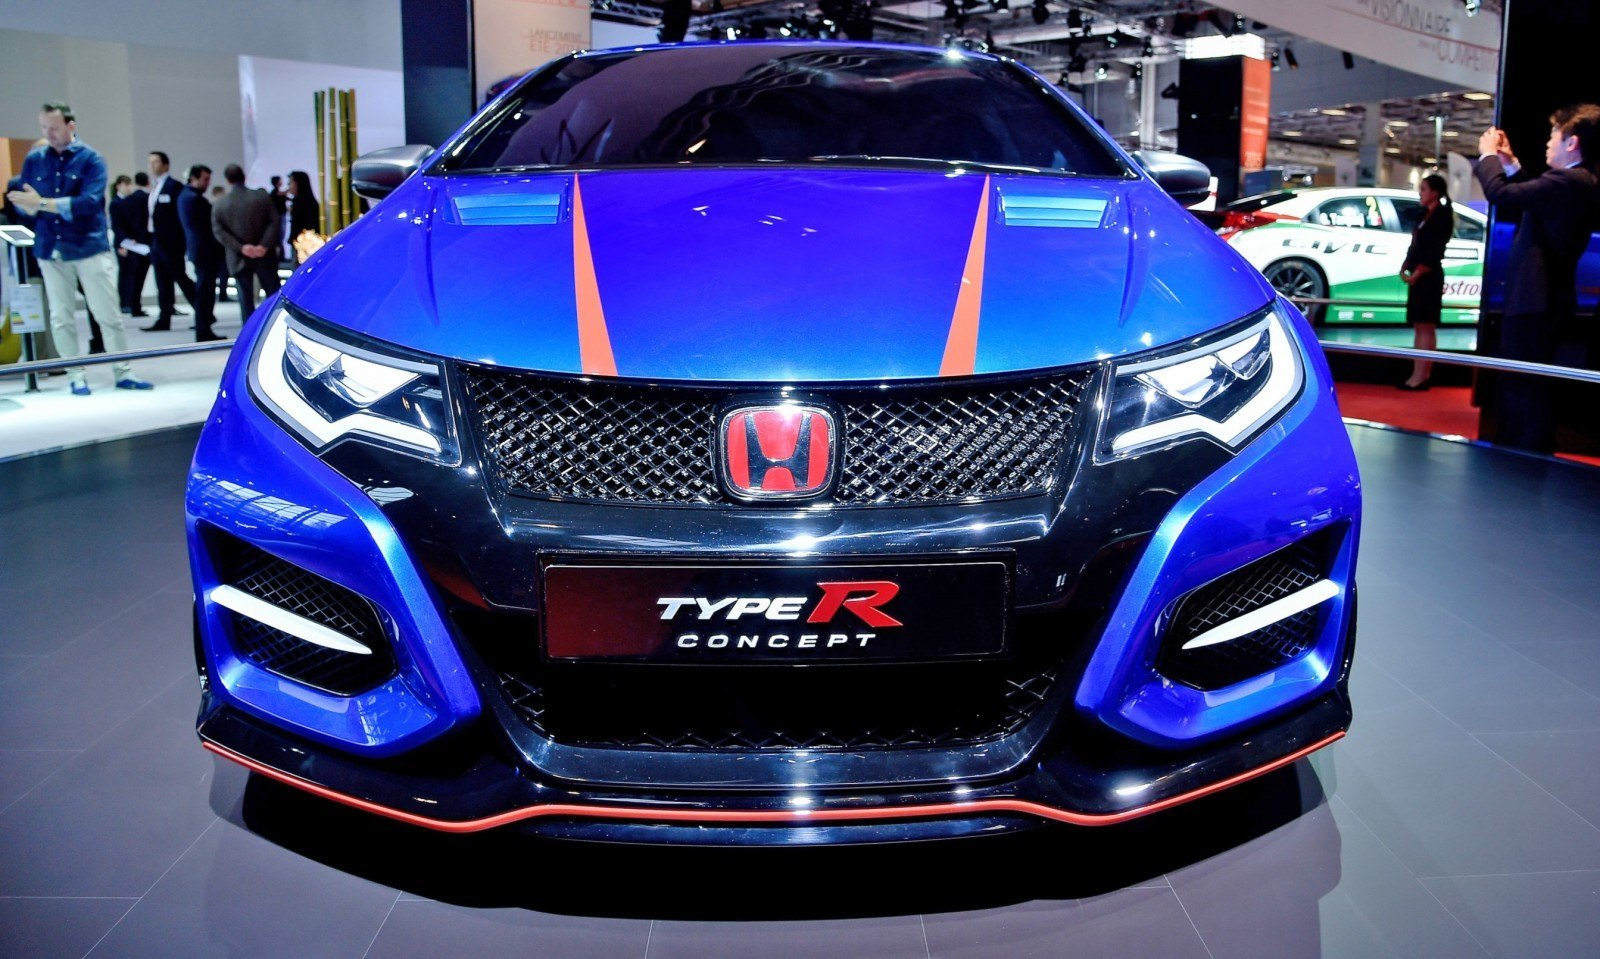 2015 Honda Civic Type R Concept Two Makes Paris Debut 3